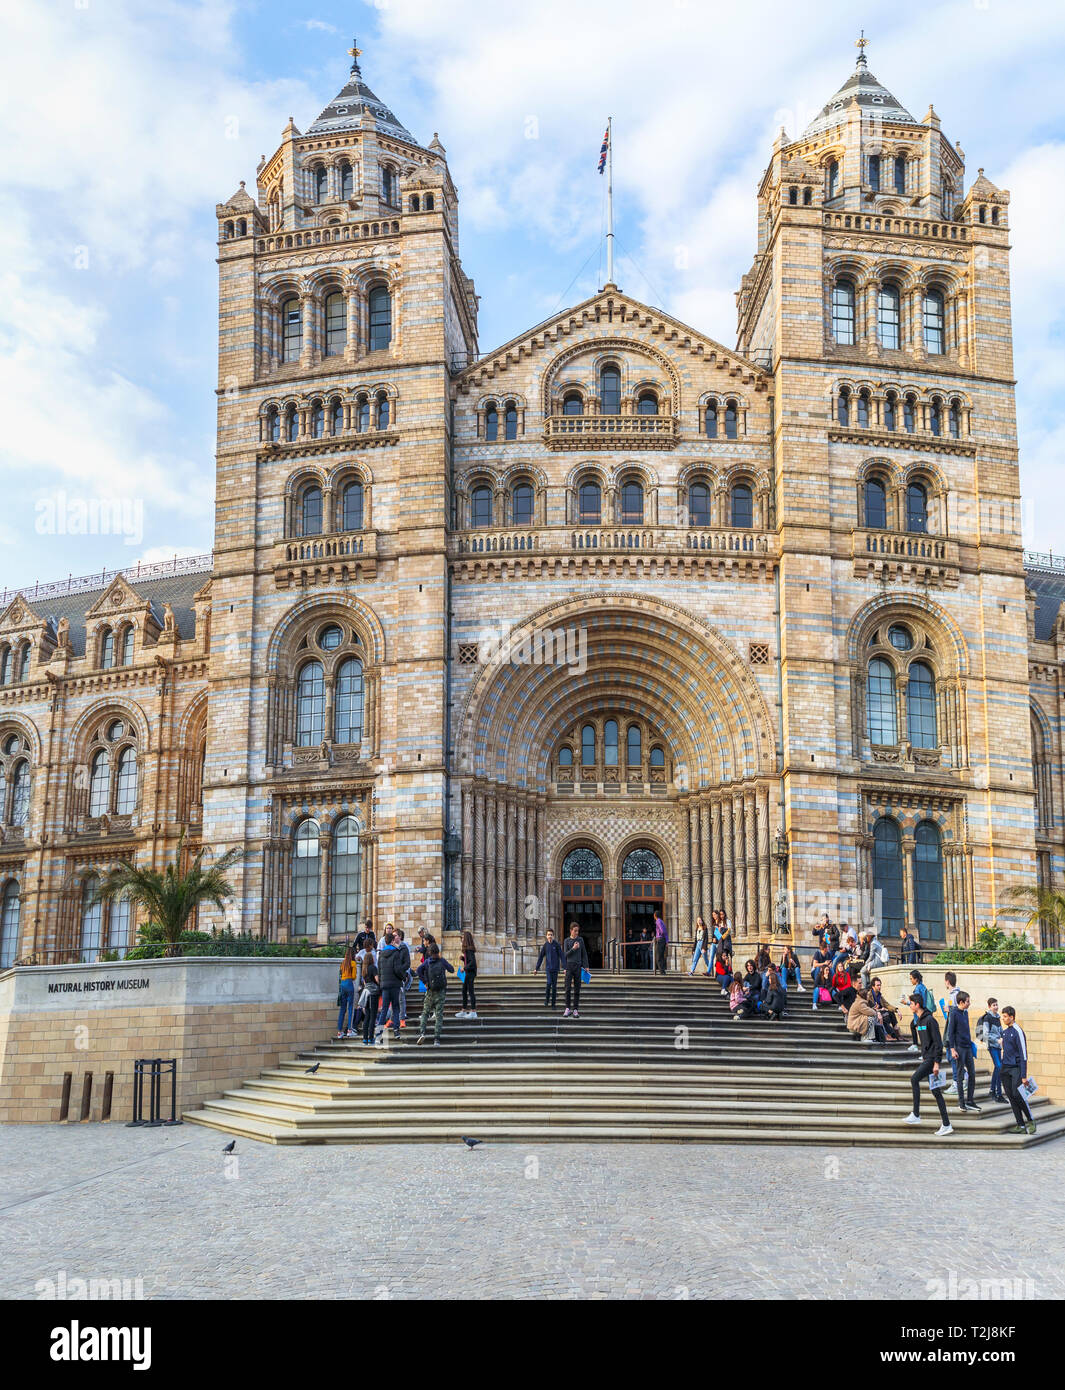 Entrance steps at the iconic Natural History Museum, Waterhouse Building, in Cromwell Road, South Kensington London SW7, visitors on steps - Stock Image